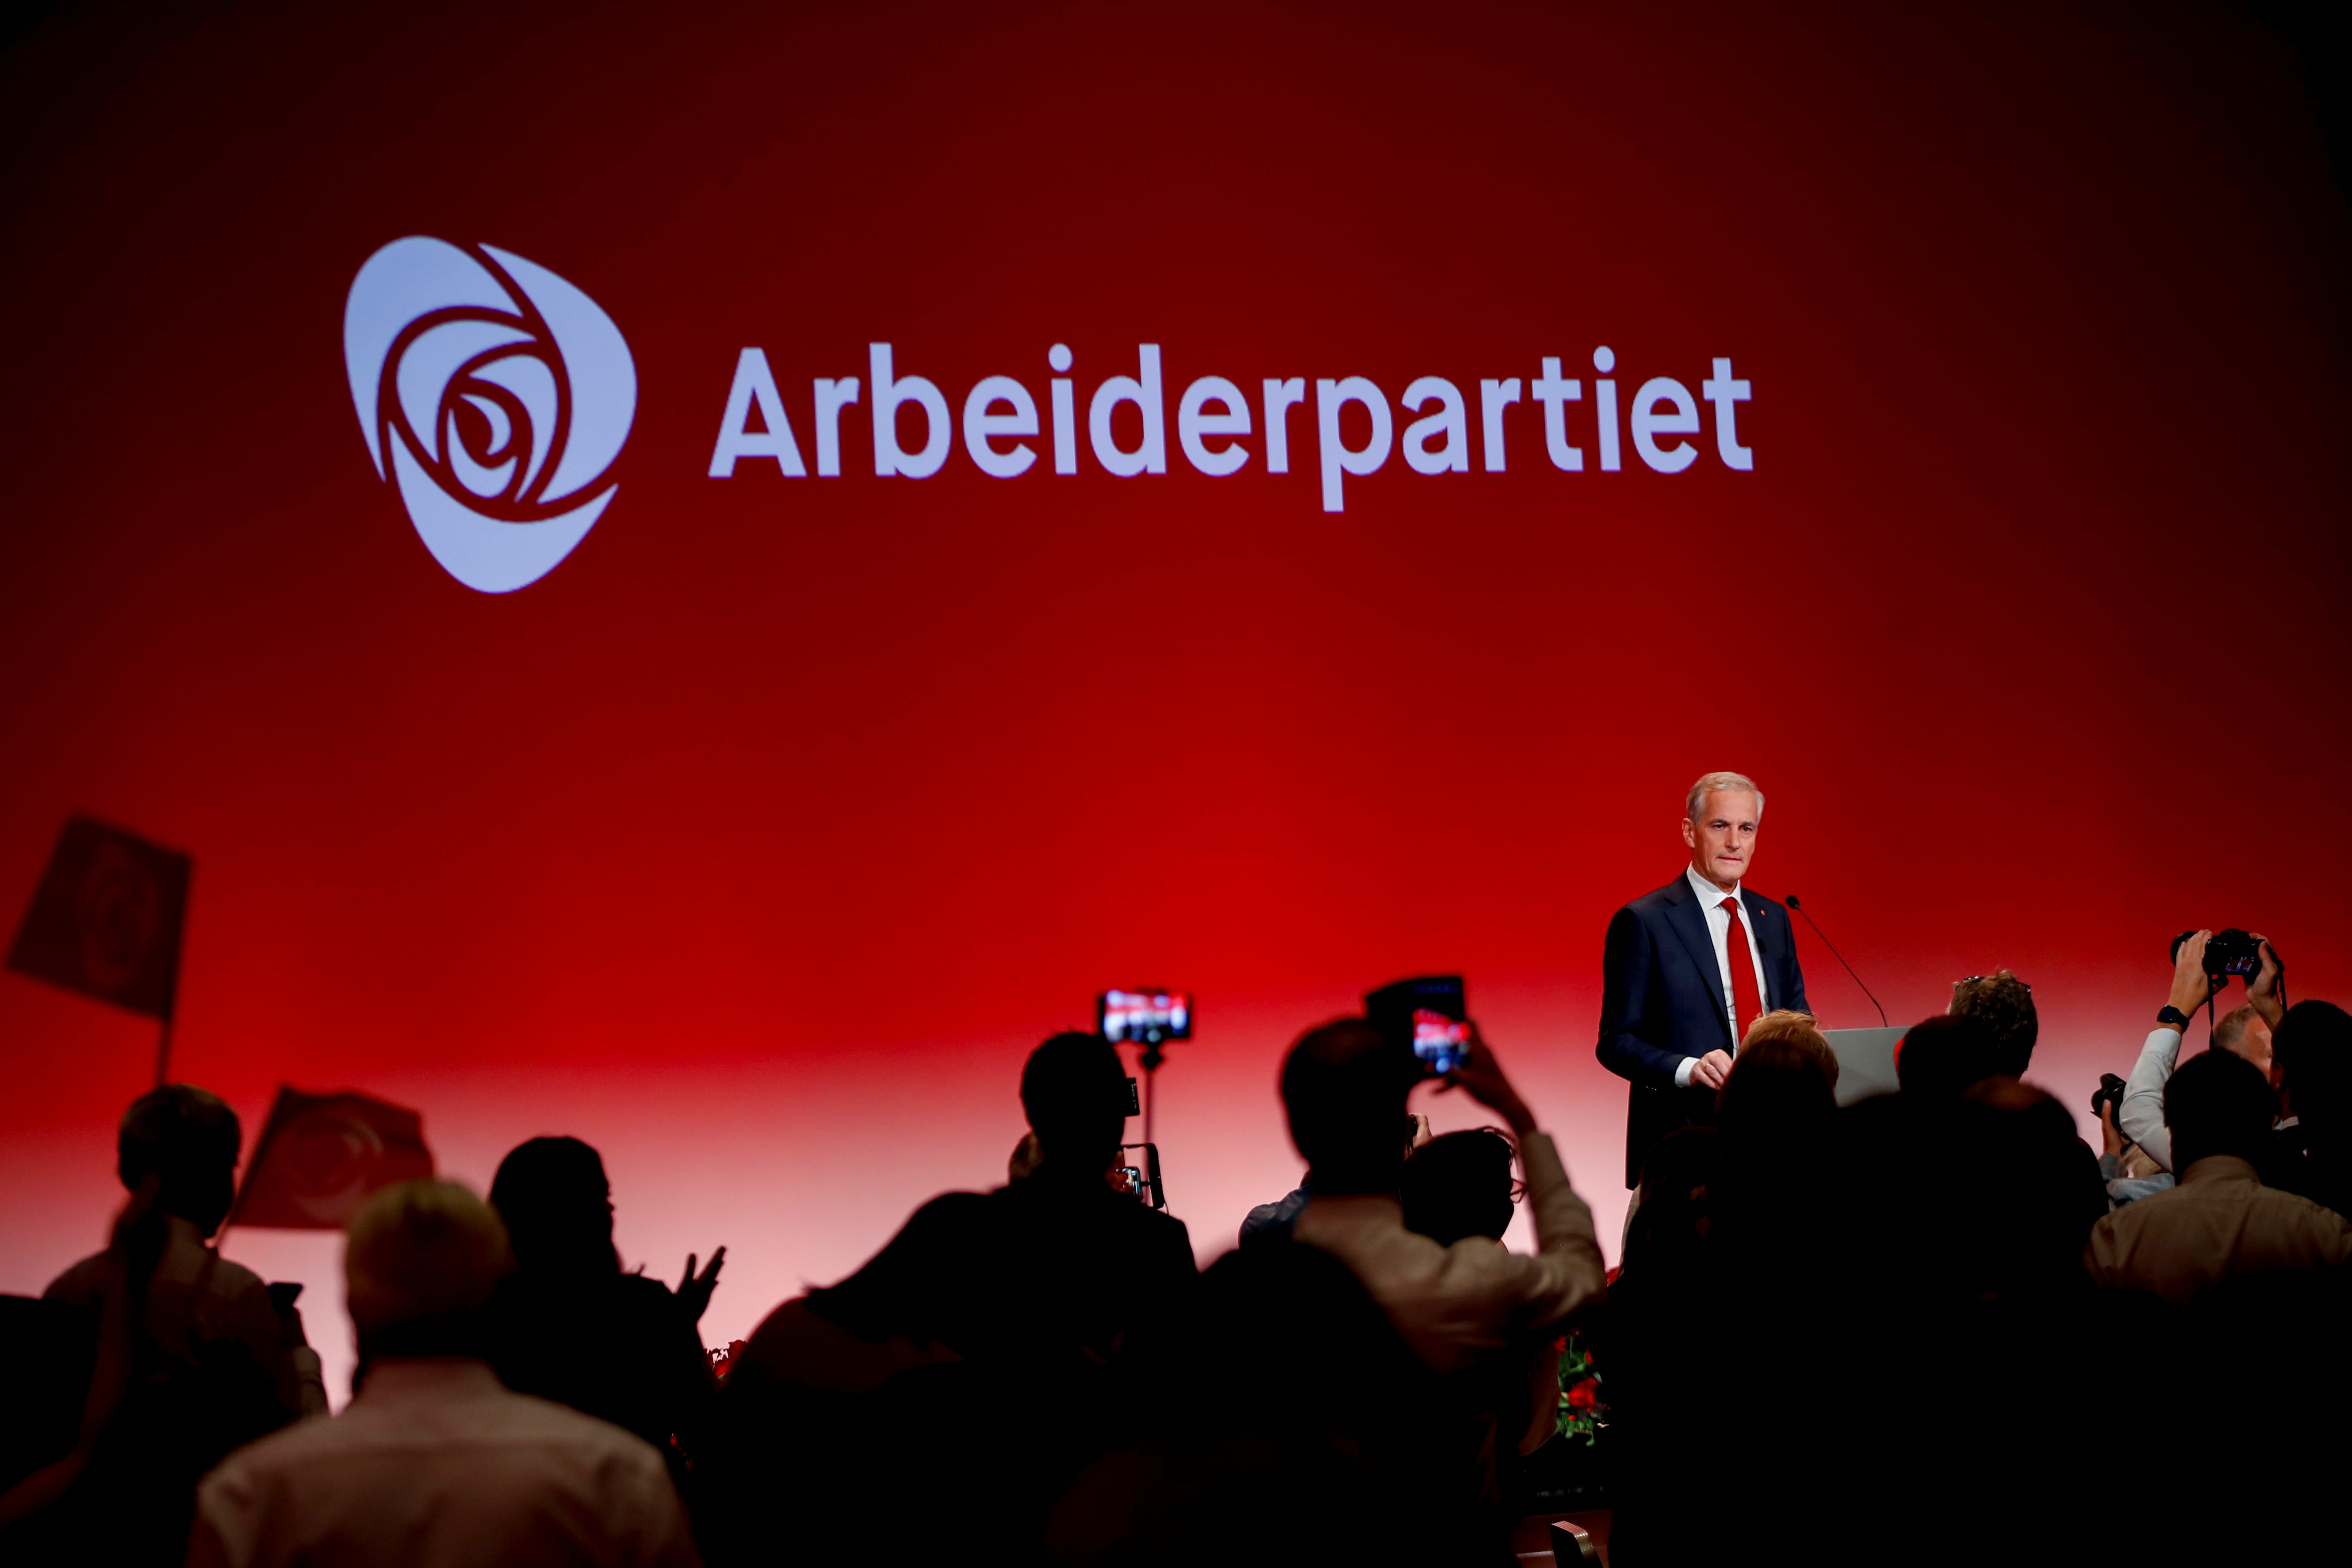 Norway's Labor Party leader Jonas Gahr Stoere speaks at the Labor Party's election vigil at Folkets Hus during parliamentary elections, in Oslo, Norway September 13, 2021. Javad Parsa/NTB via REUTERS